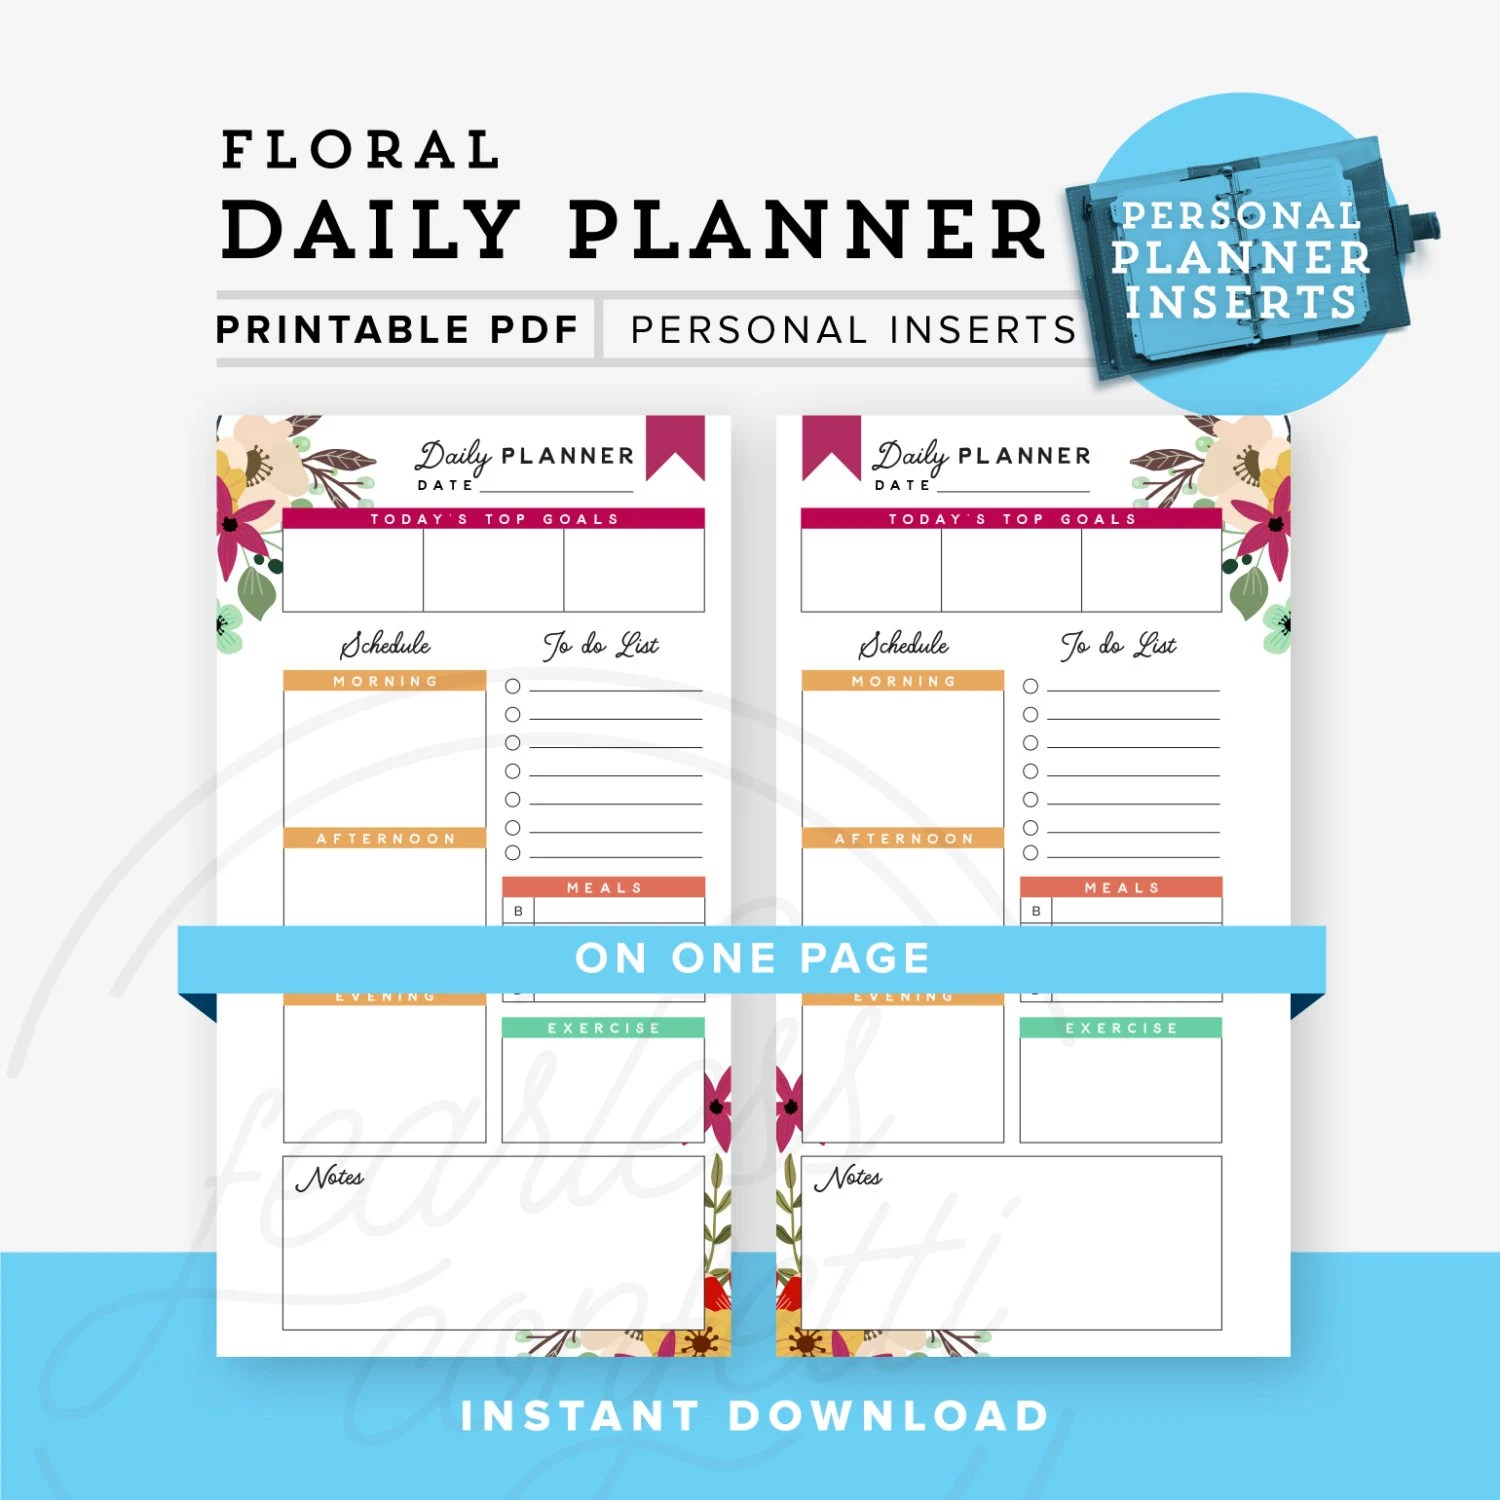 Daily Planner Personal Planner Printable Personal planner Etsy